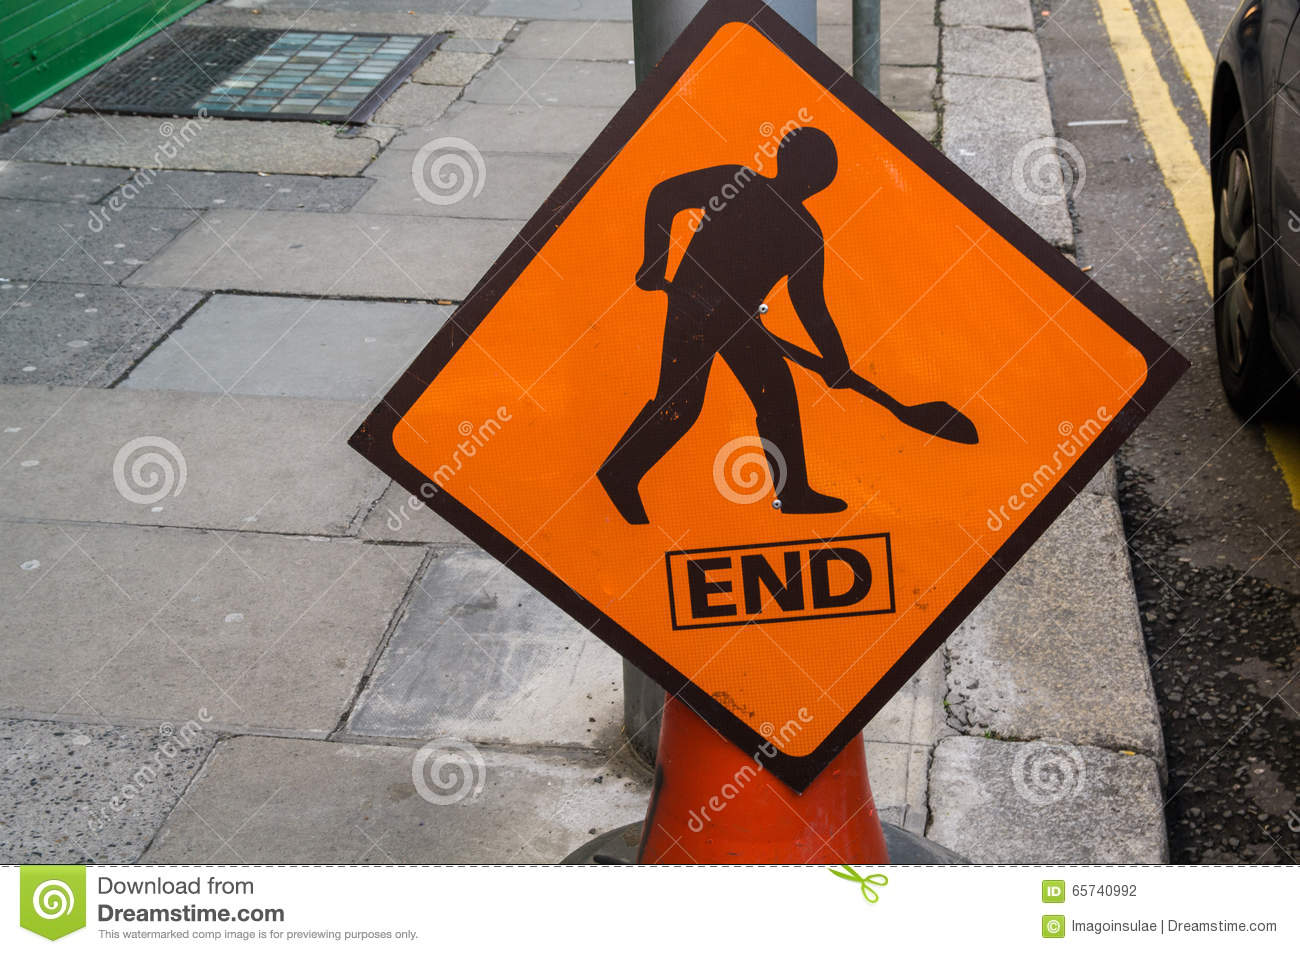 ireland road work sign end